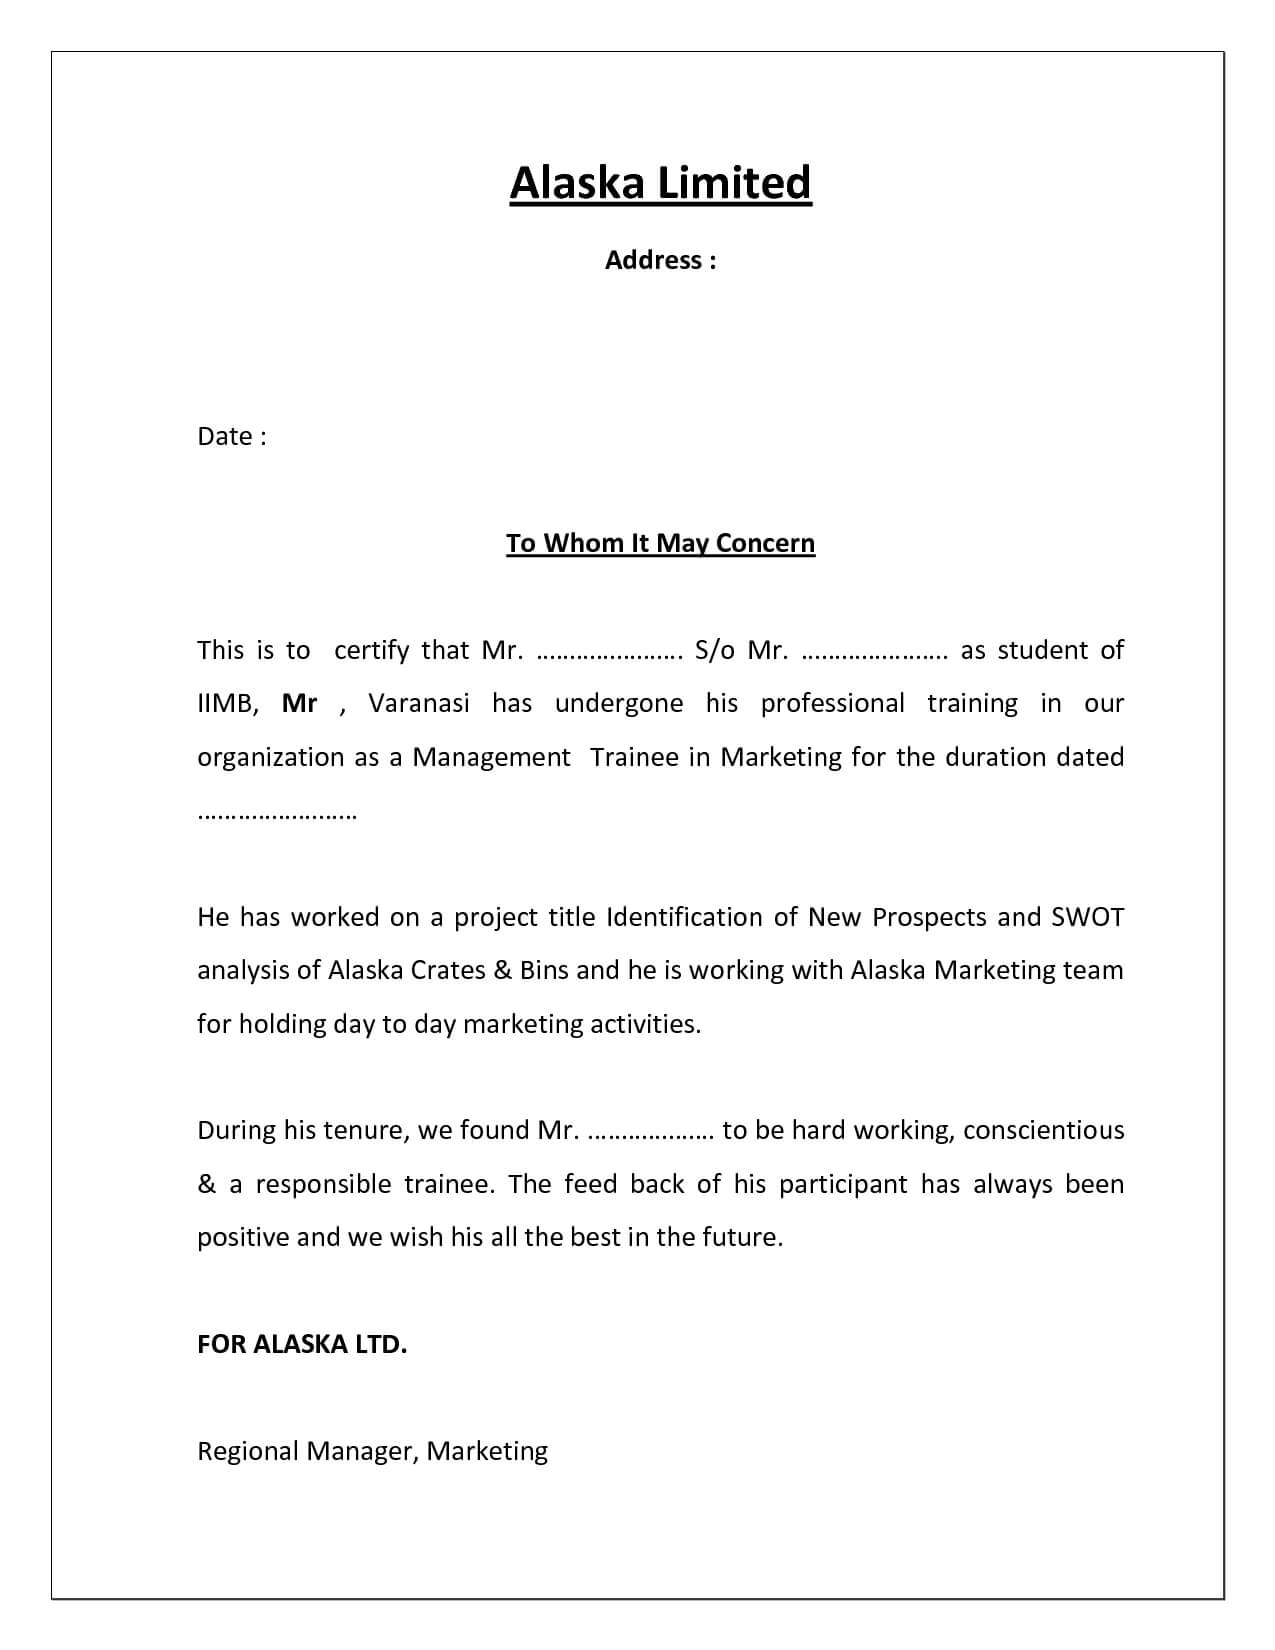 Project Completion Certificate Template | Cover Latter Regarding Certificate Template For Project Completion